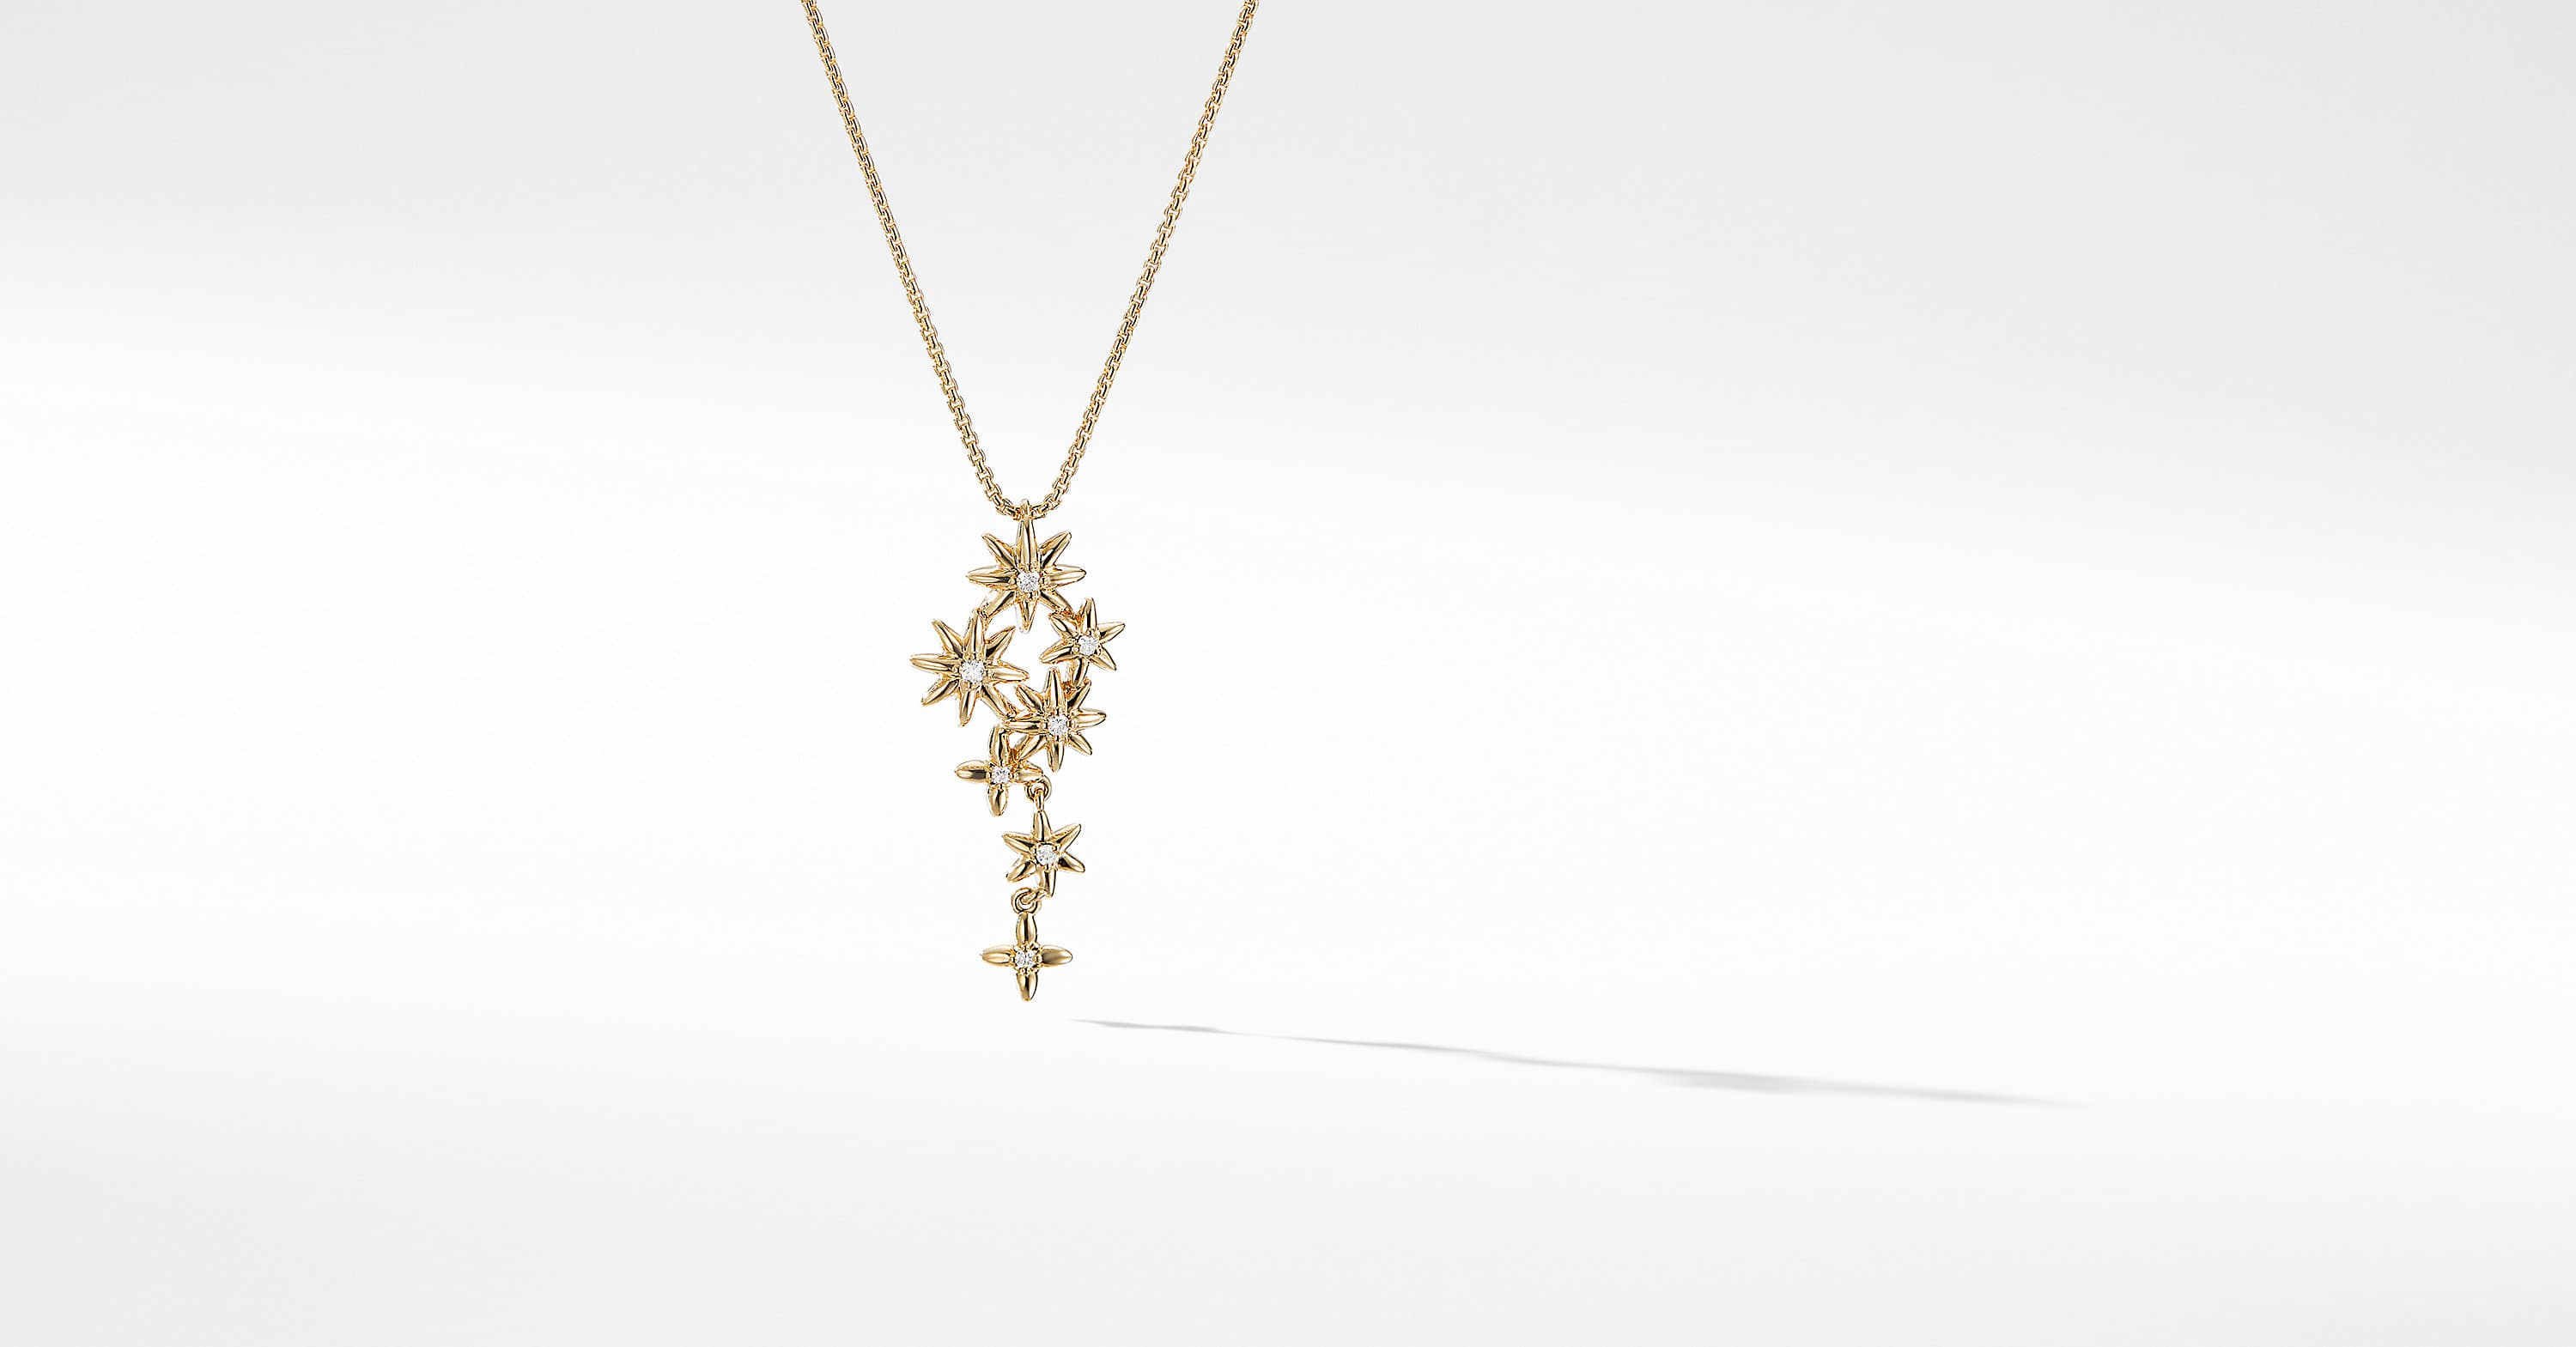 Pendentif Starburst Constellation en or 18K avec diamants